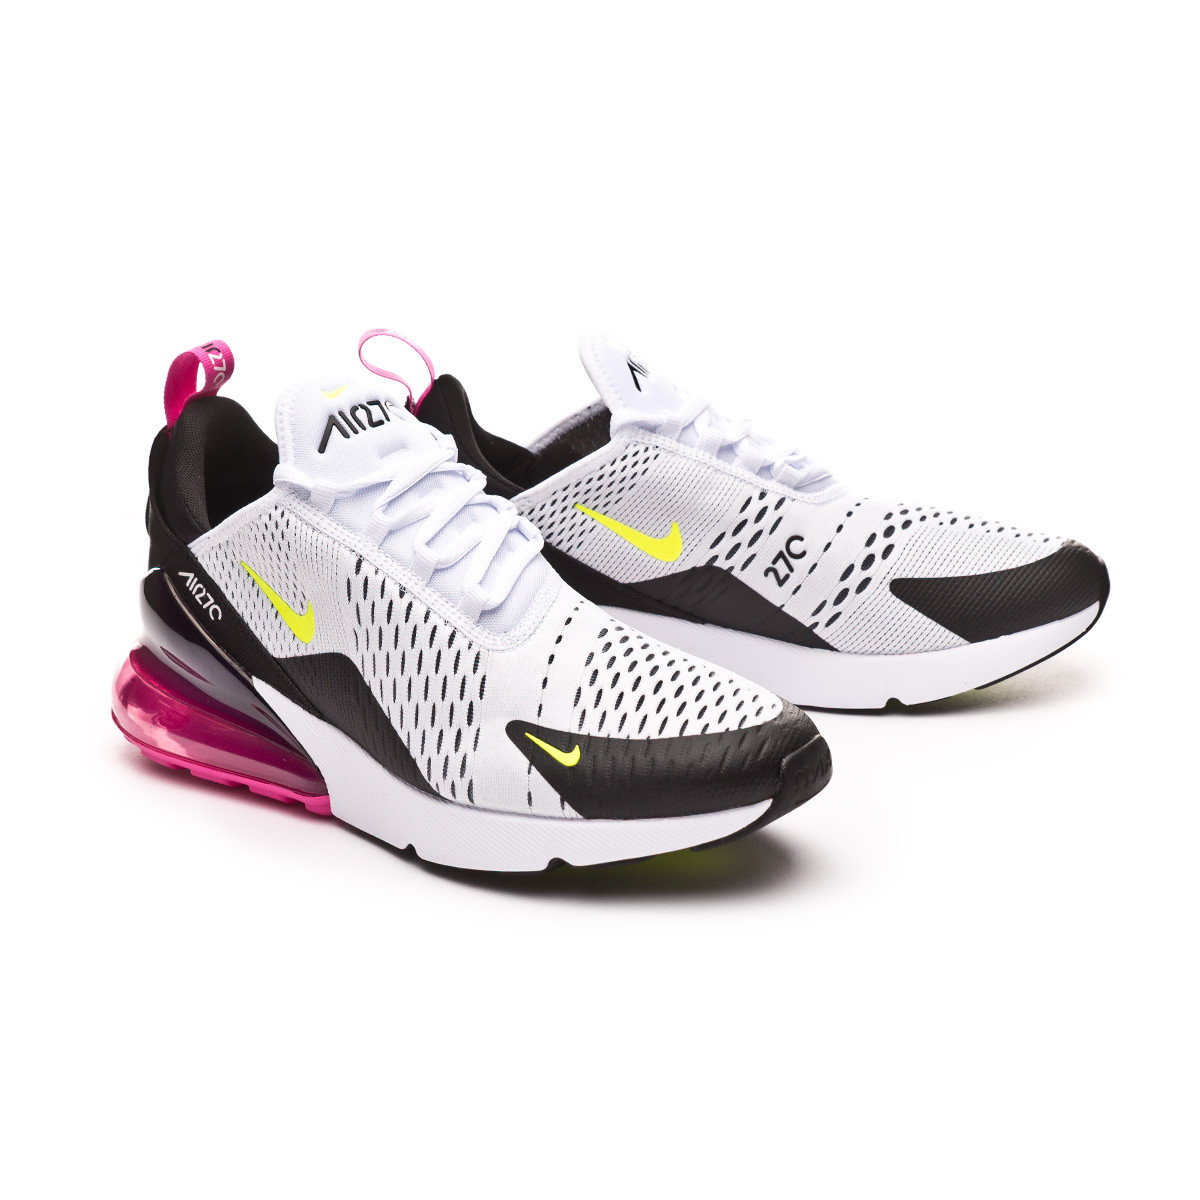 best price another chance buying new Nike Air Max 270 Trainers